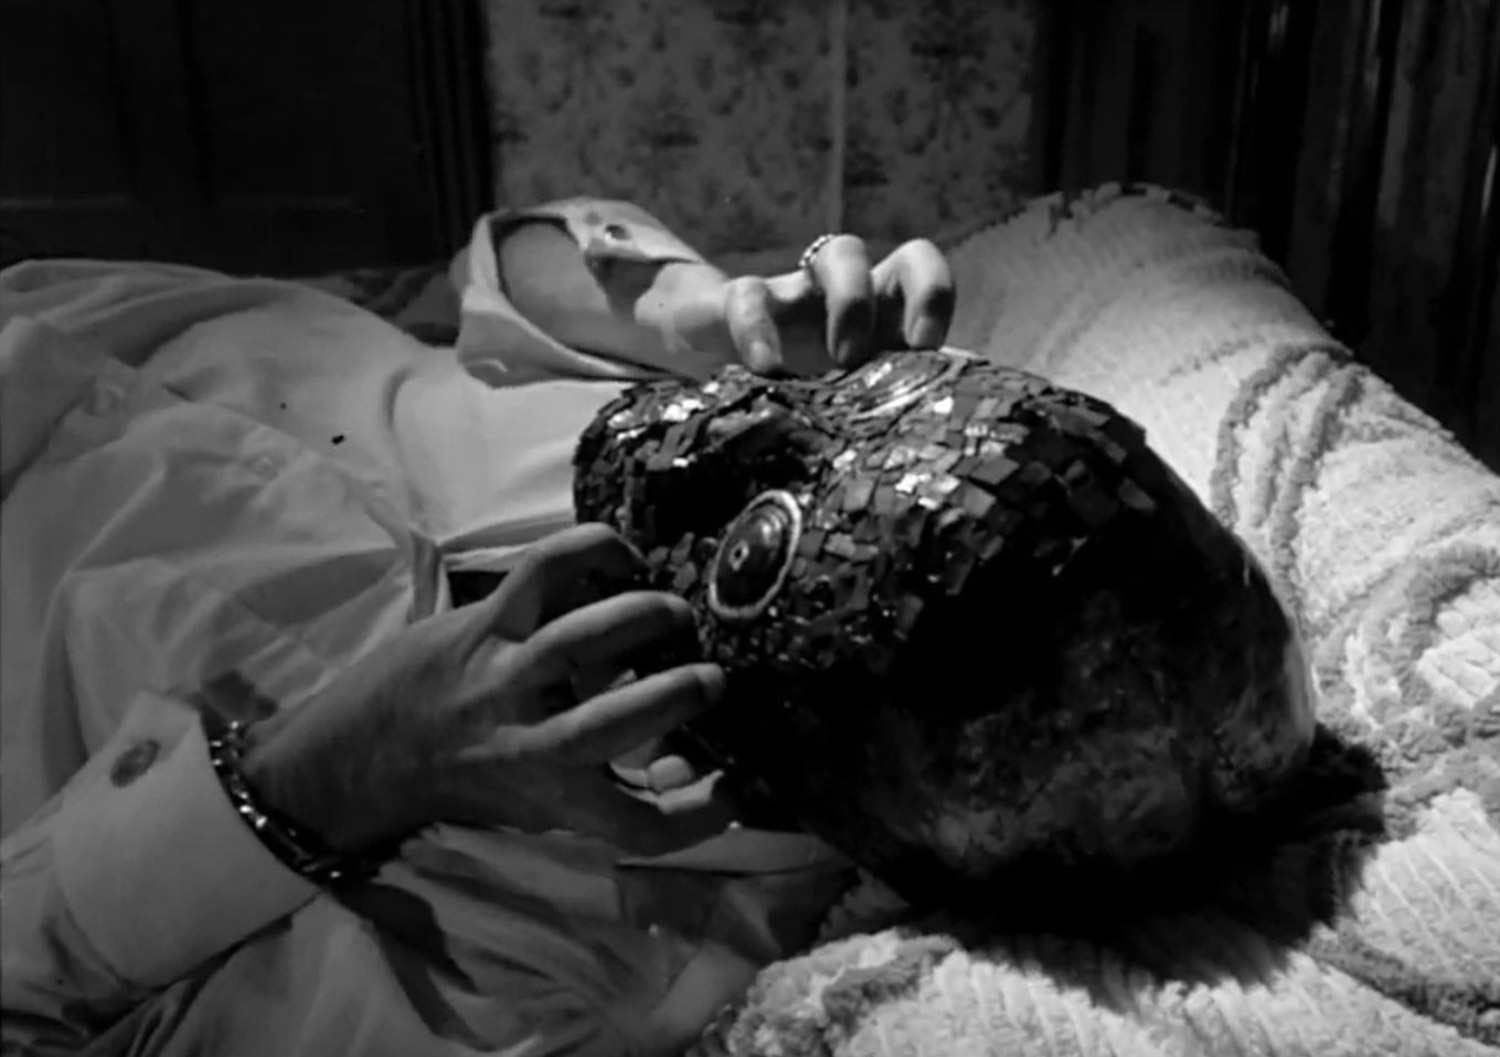 Canadian Horror Films - The Mask 1961, wearing mask